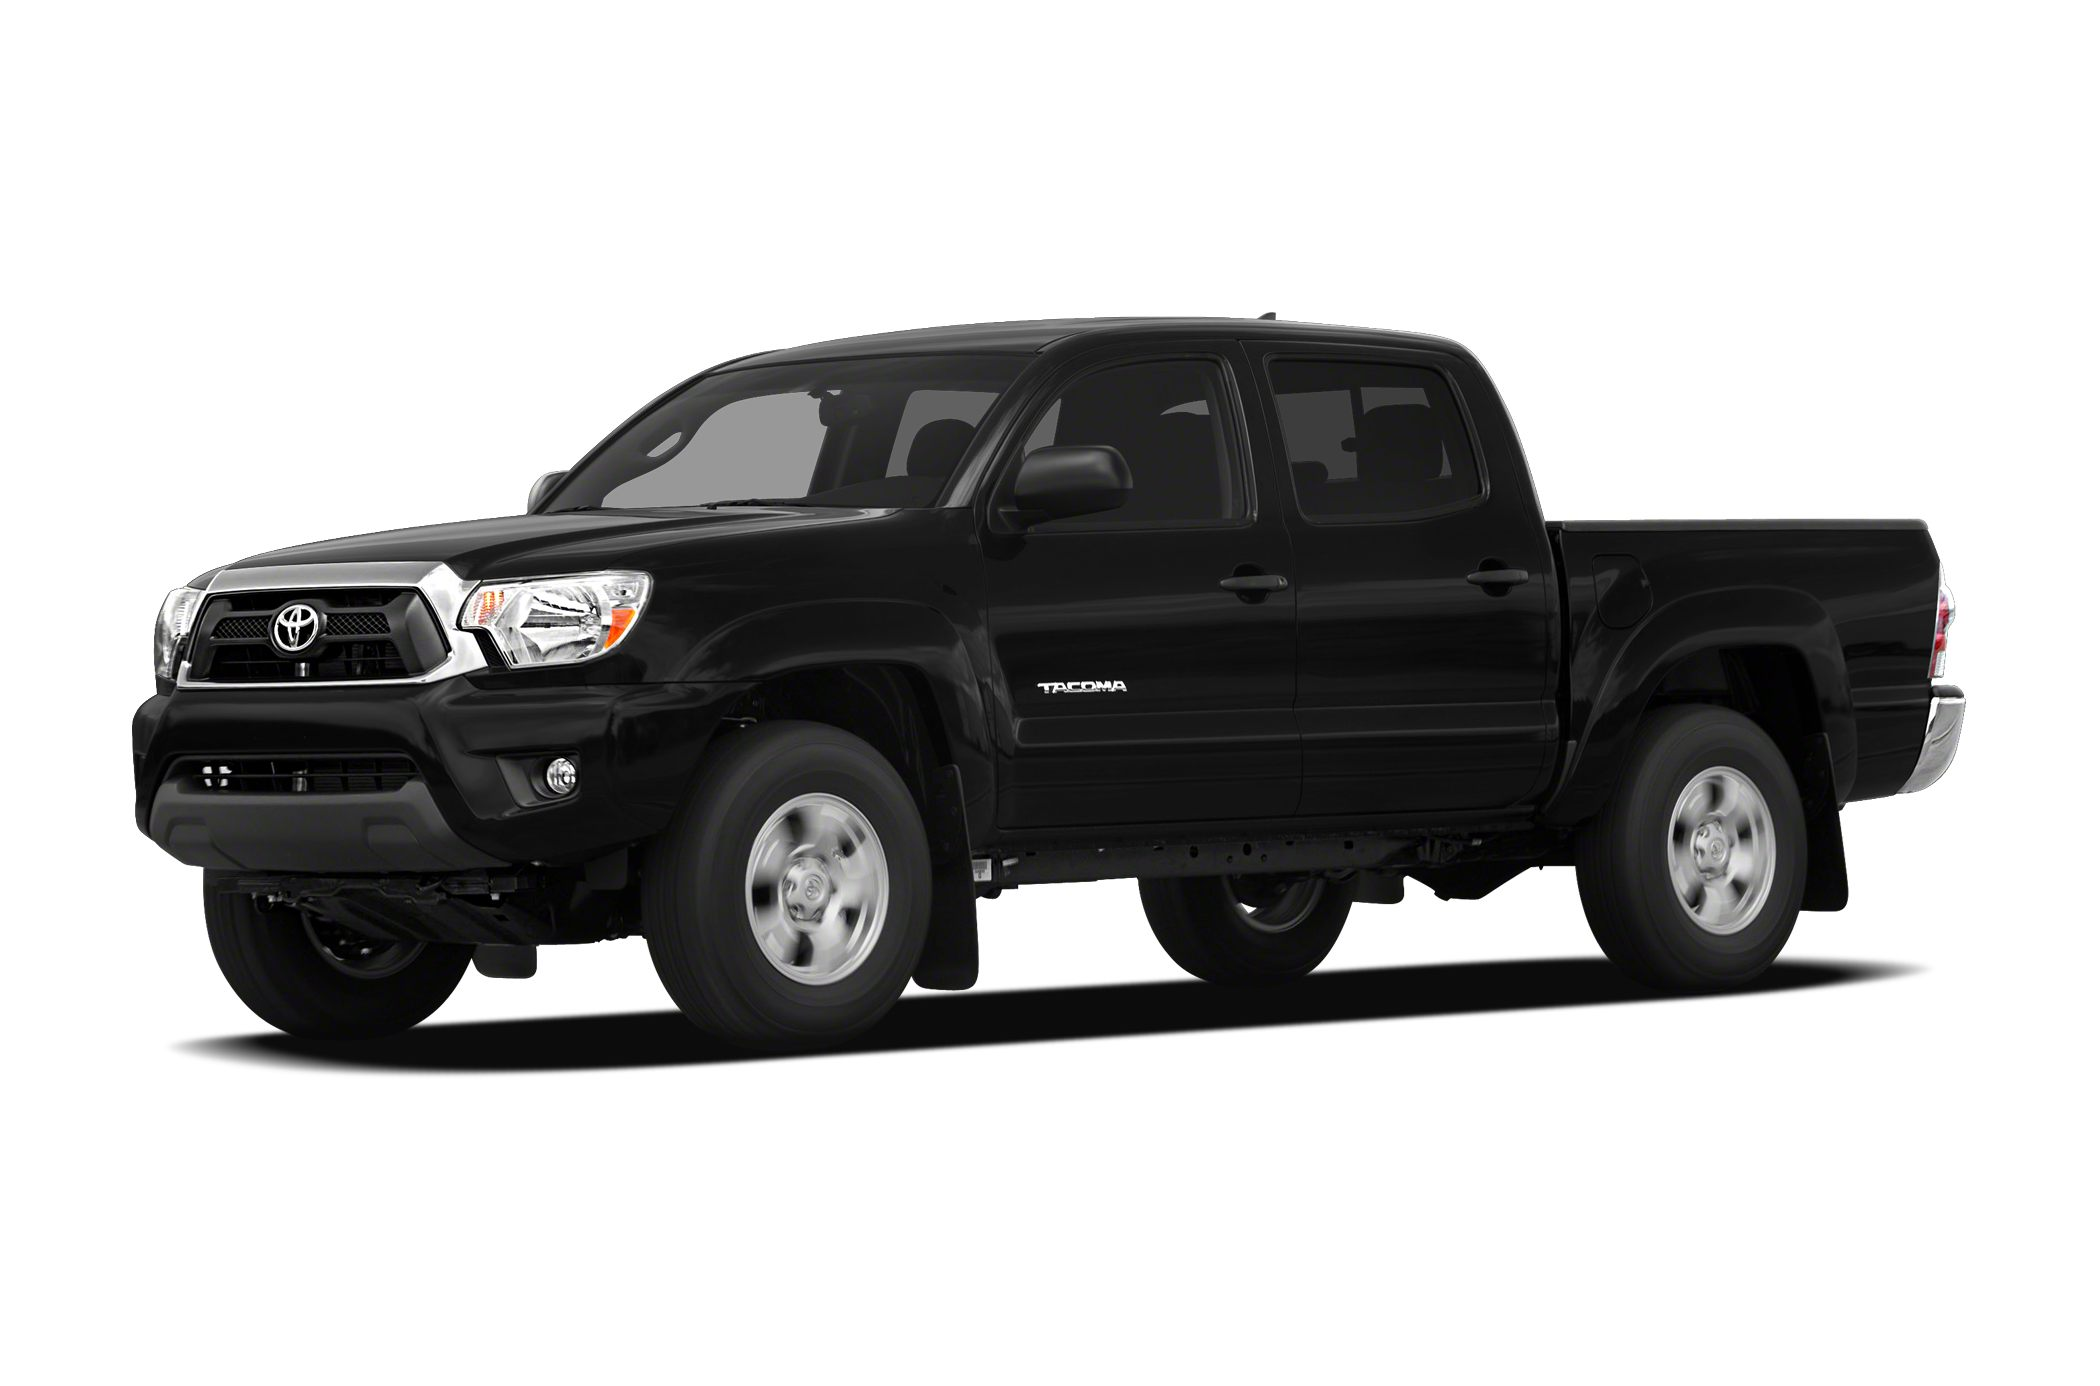 2012 Toyota Tacoma Base Crew Cab Pickup for sale in Binghamton for $24,999 with 58,773 miles